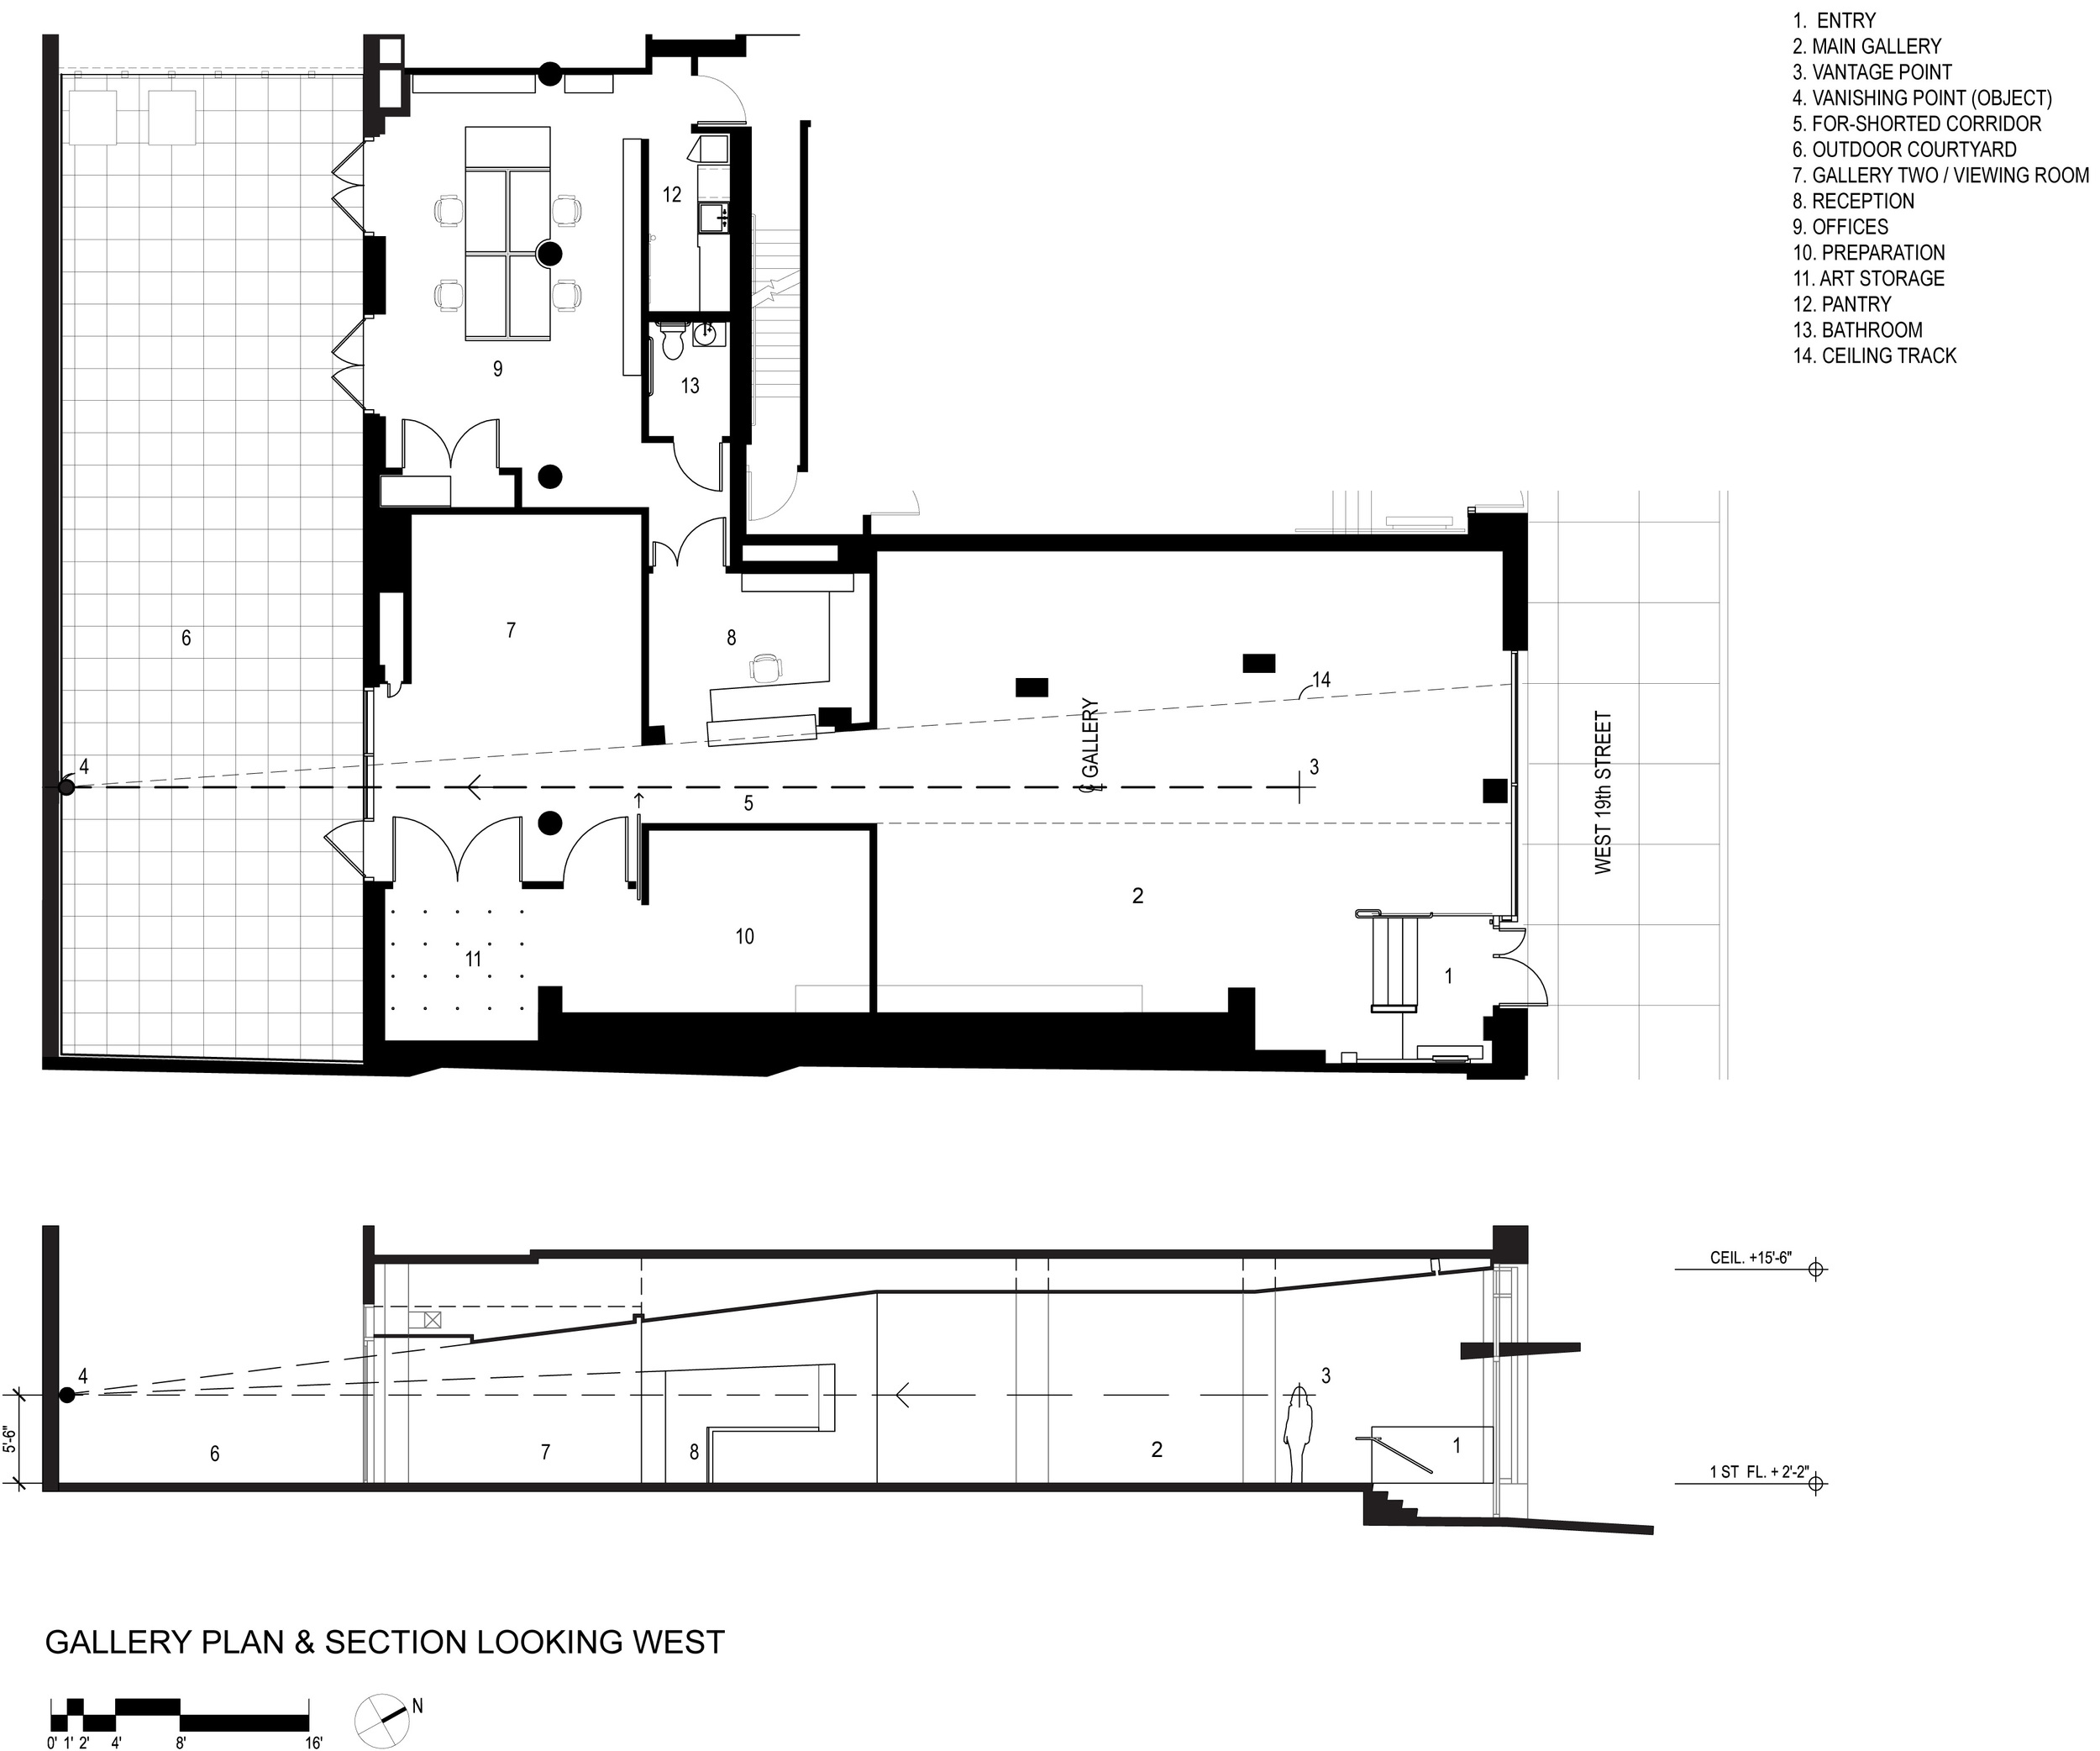 Plan and Section Concept